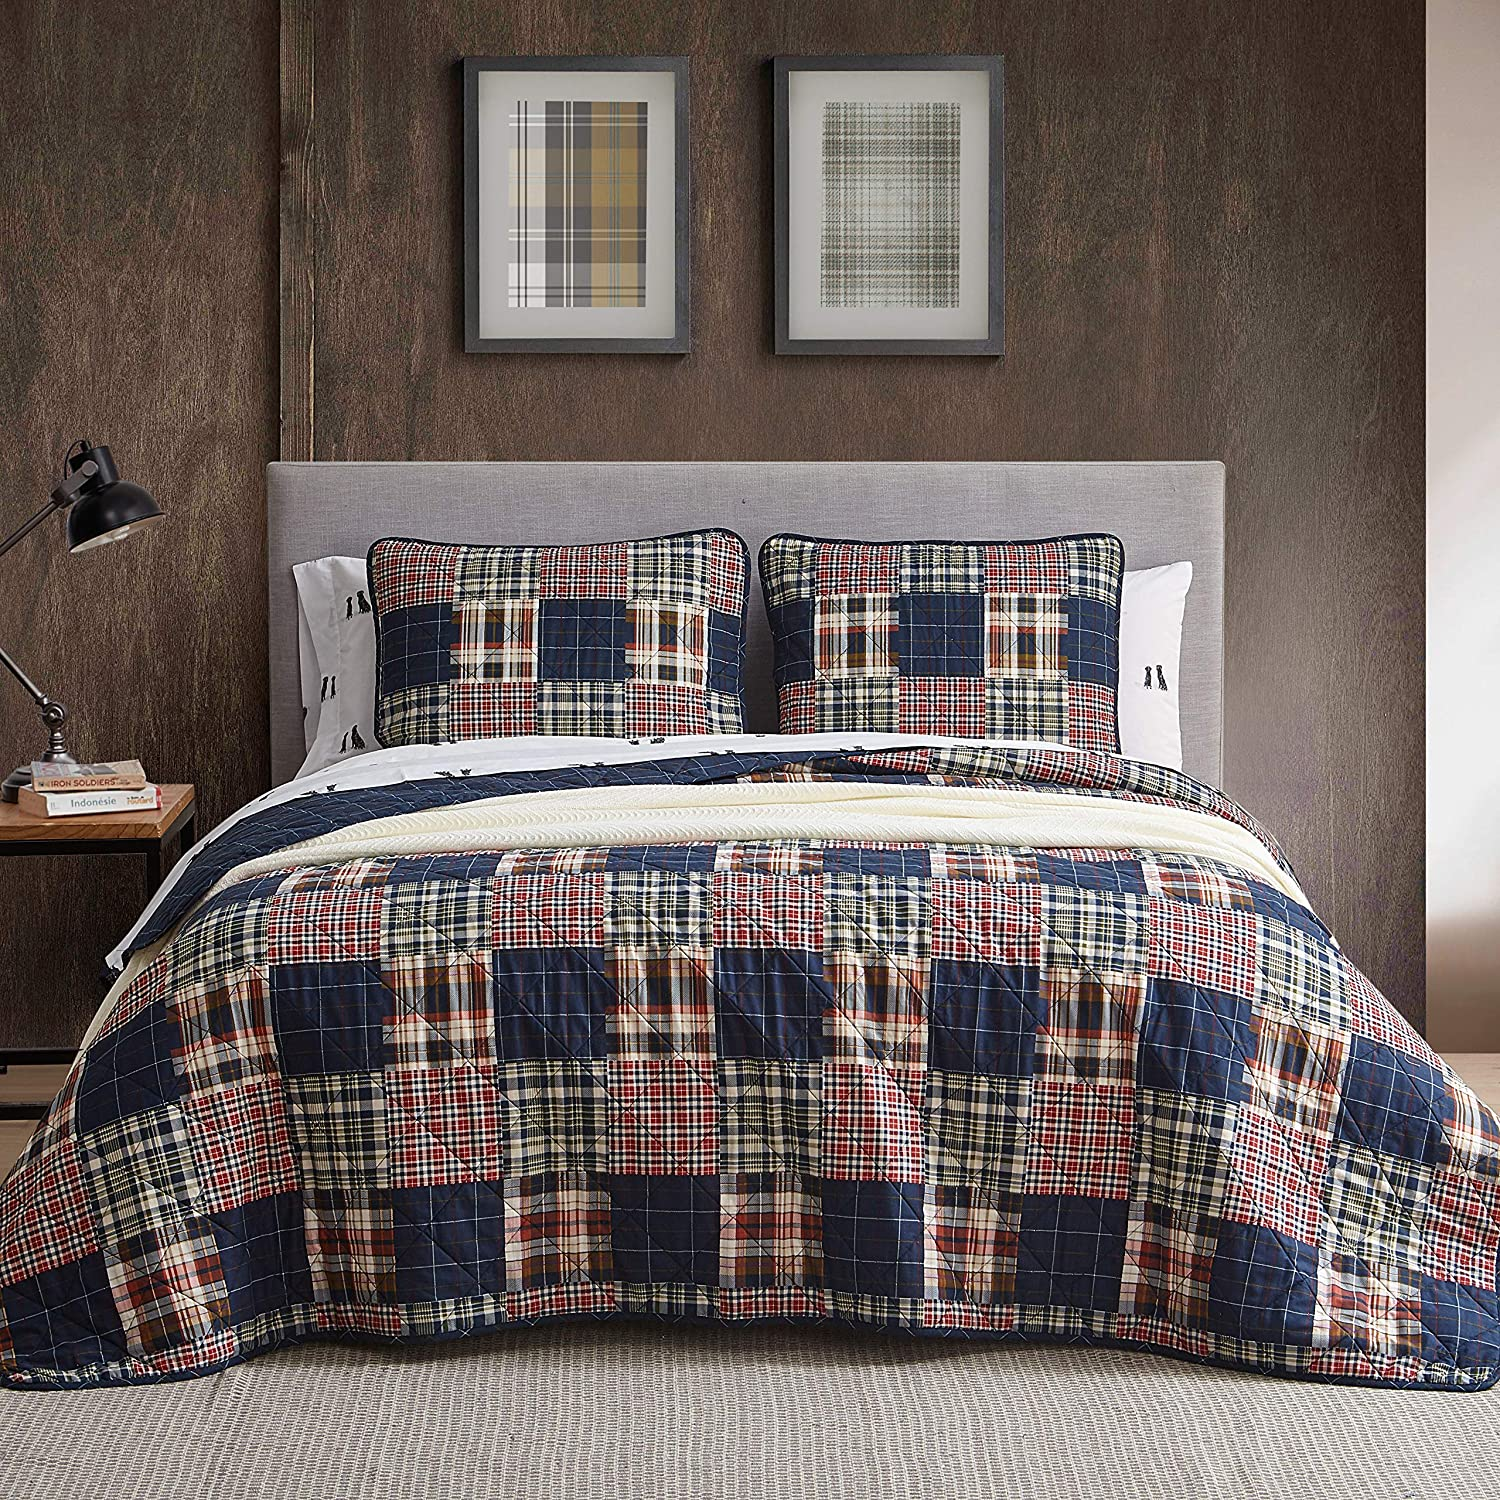 Eddie Bauer Home New life Madrona Cotton Ranking TOP5 Bedding Collection Set-100%